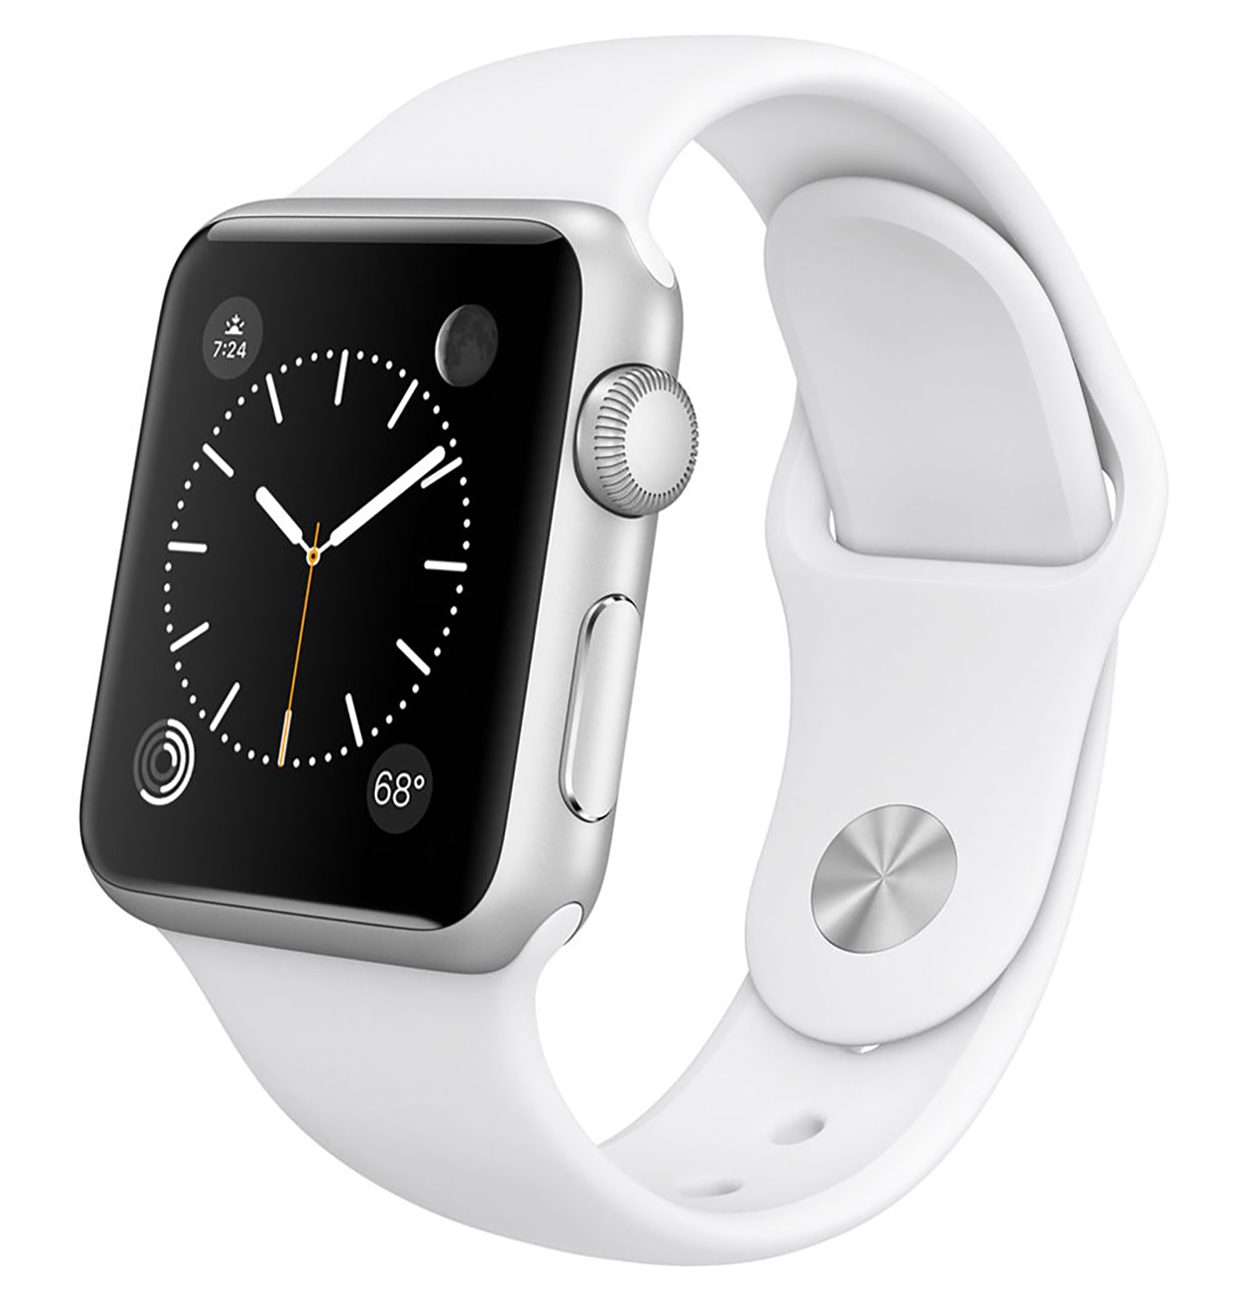 new style f5c68 f54c2 Apple Watch 38mm Silver Aluminum Case with White Sport Band (Certified  Refurbished)